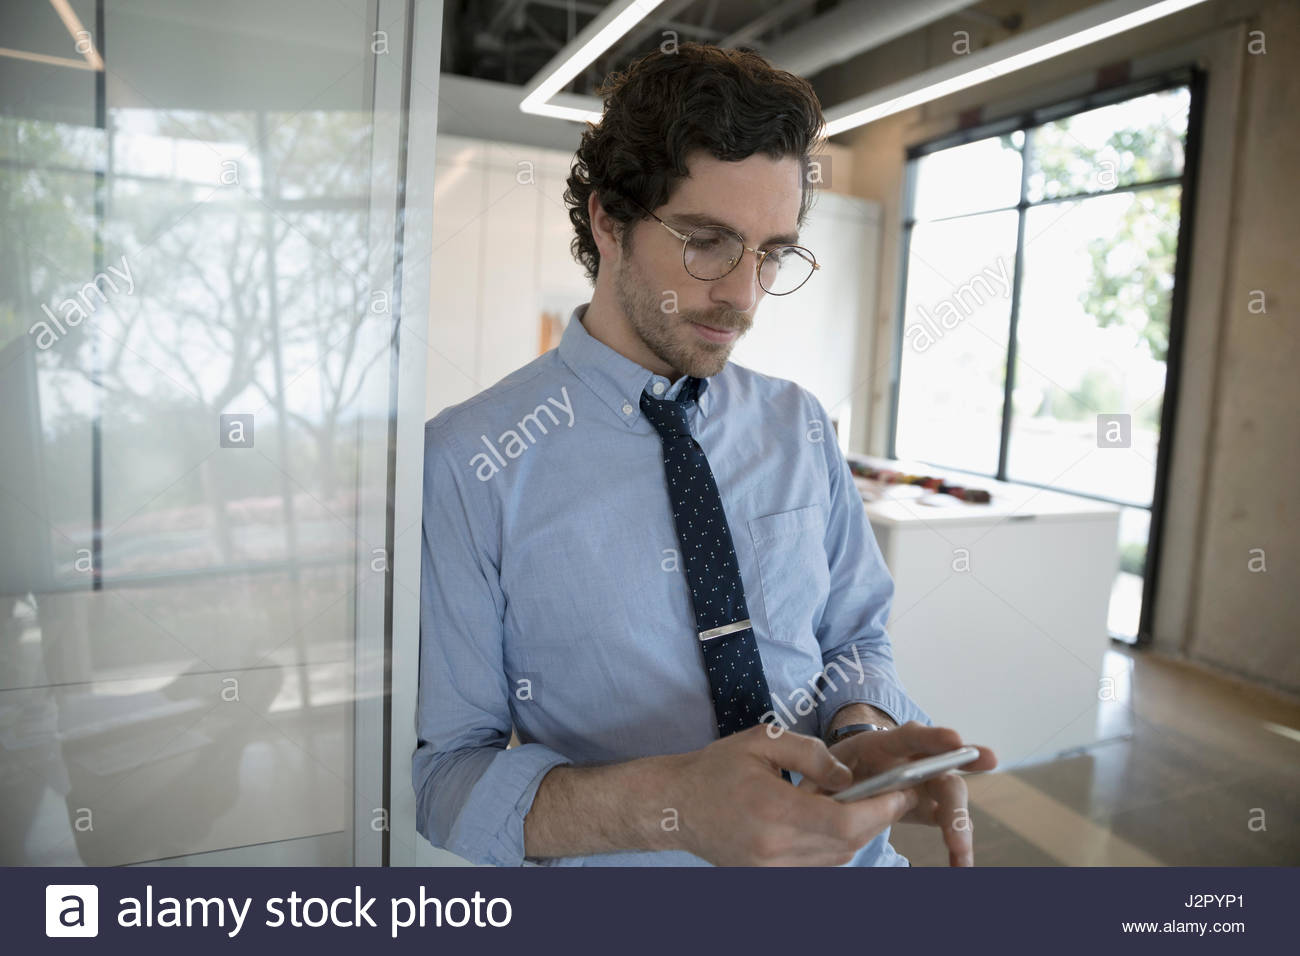 Businessman texting with smart phone in conference room - Stock Image